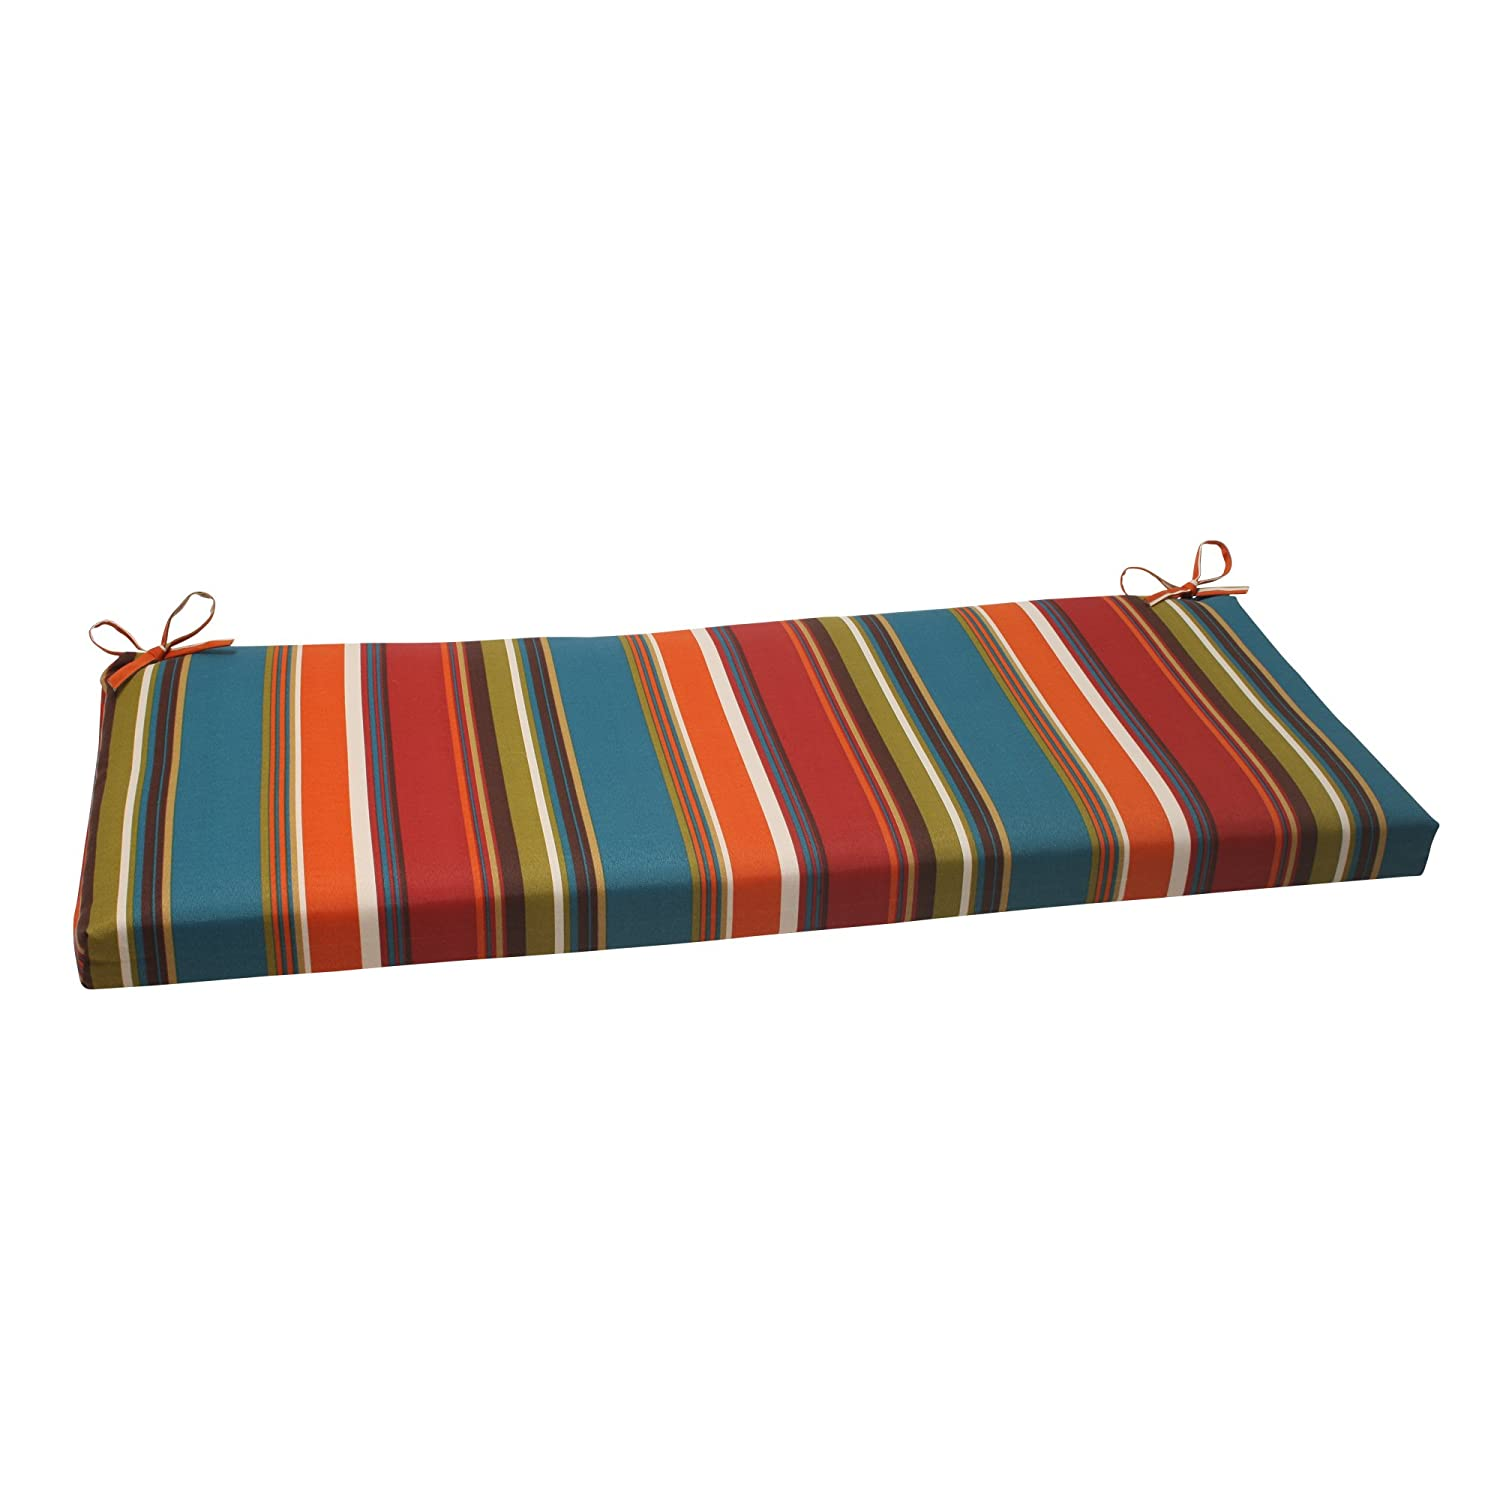 Pillow Perfect Indoor/Outdoor Westport Bench Cushion - Patio Furniture Cushions Amazon.com